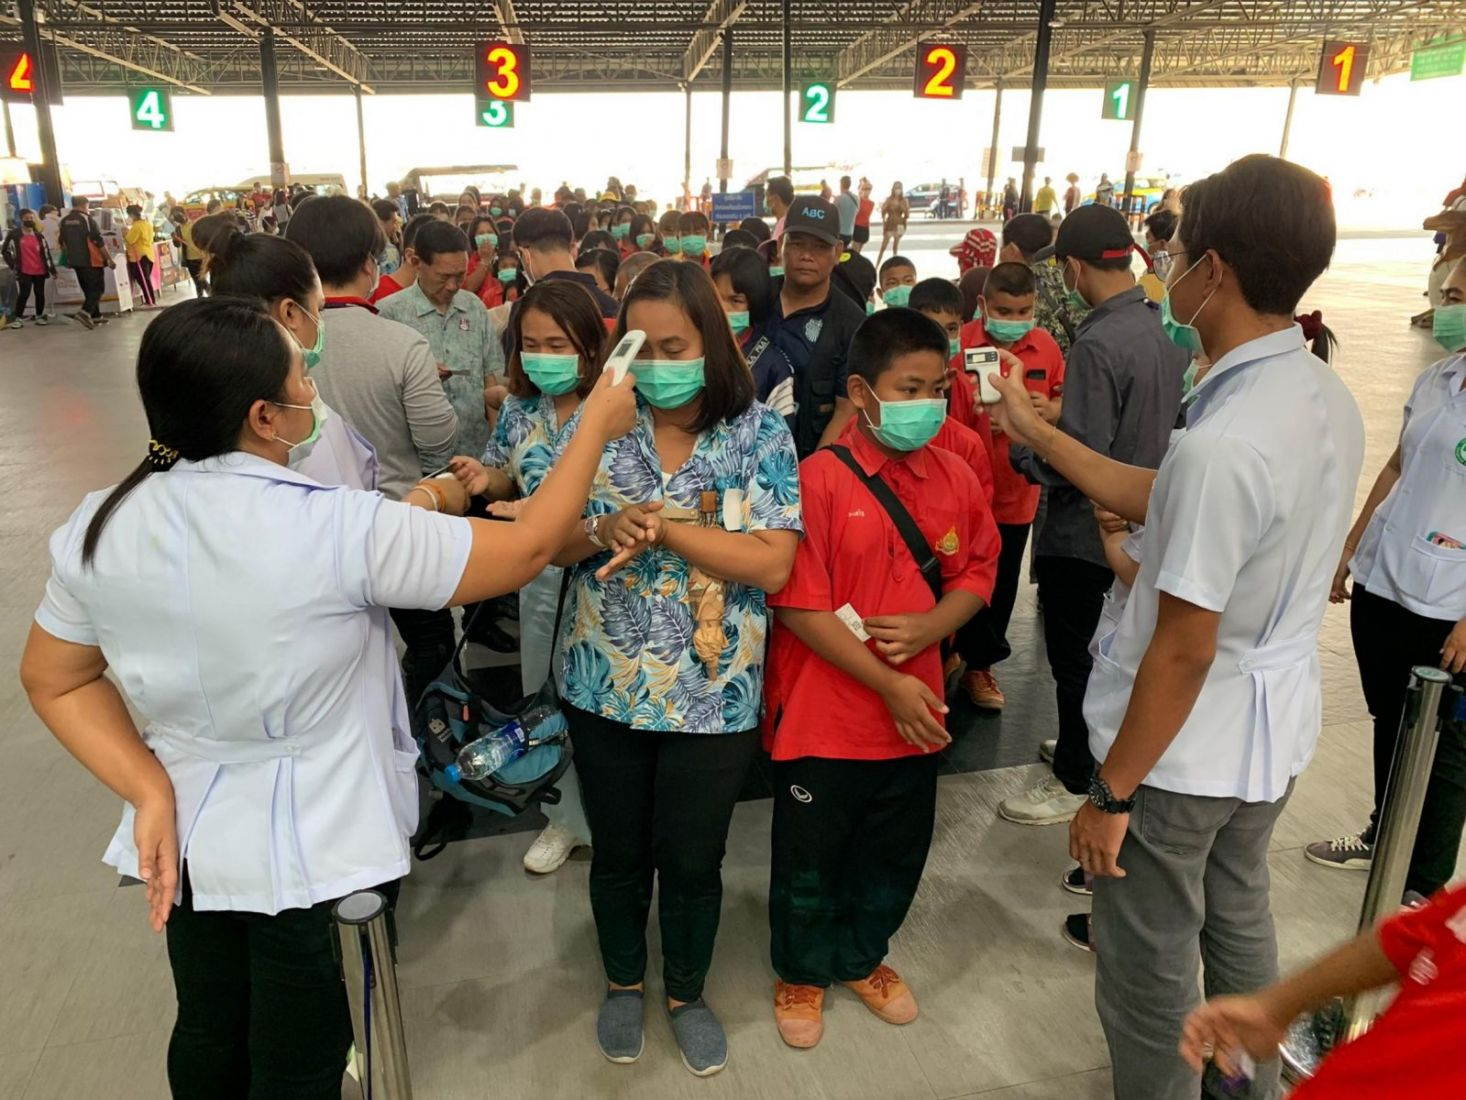 No new Covid-19 cases in 65 provinces for a month | The Thaiger